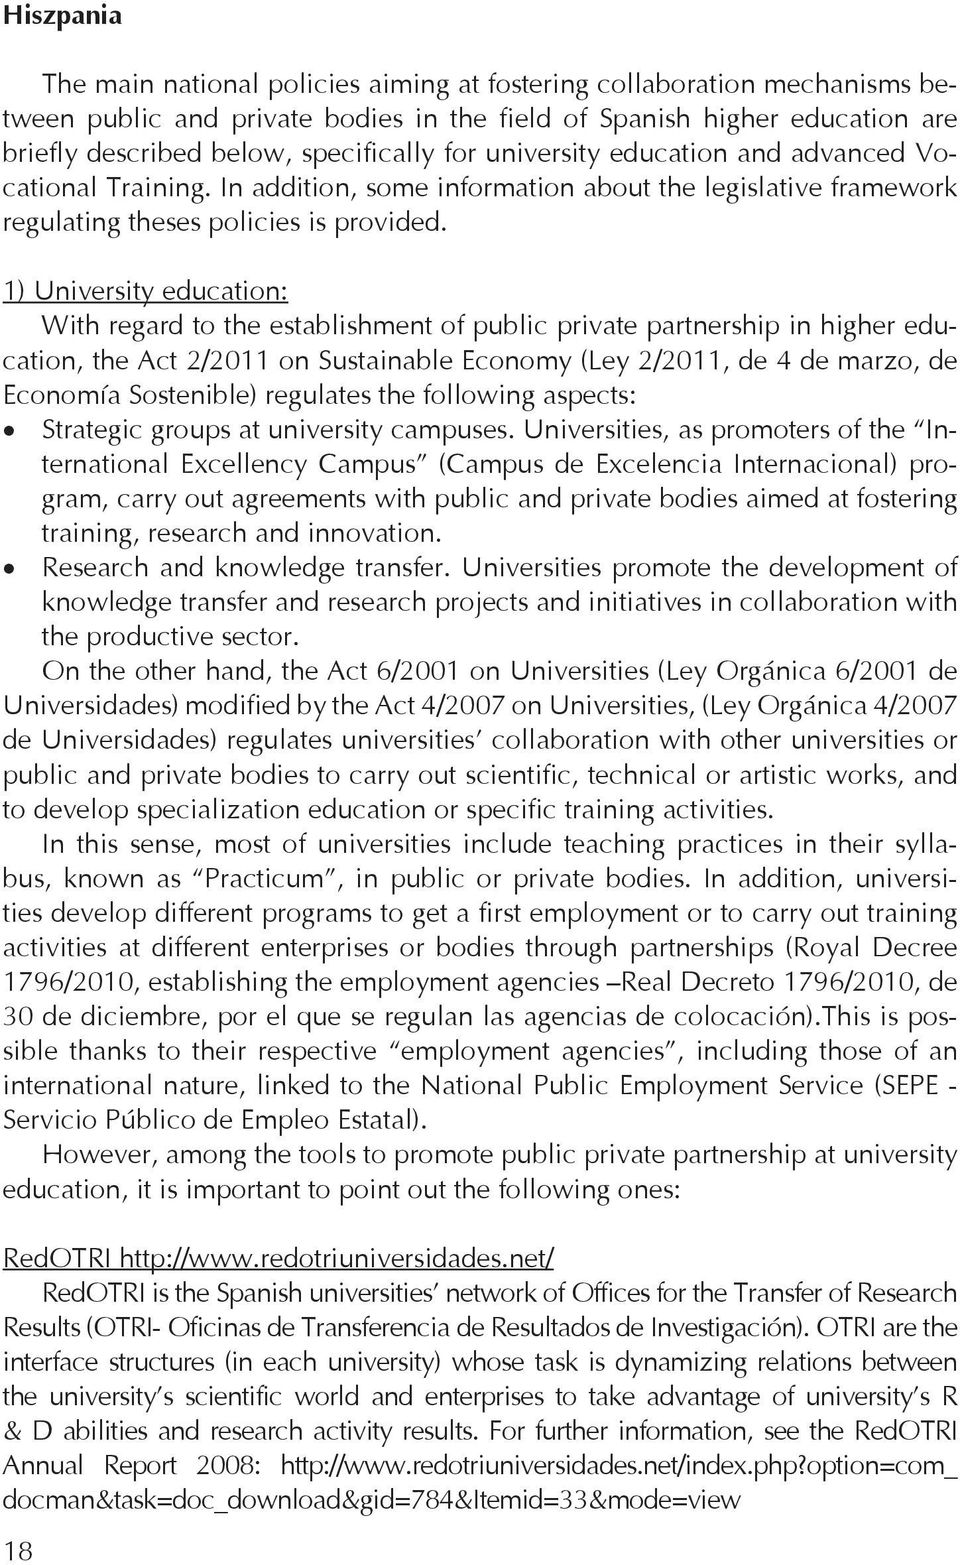 1) University education: With regard to the establishment of public private partnership in higher education, the Act 2/2011 on Sustainable Economy (Ley 2/2011, de 4 de marzo, de Economía Sostenible)